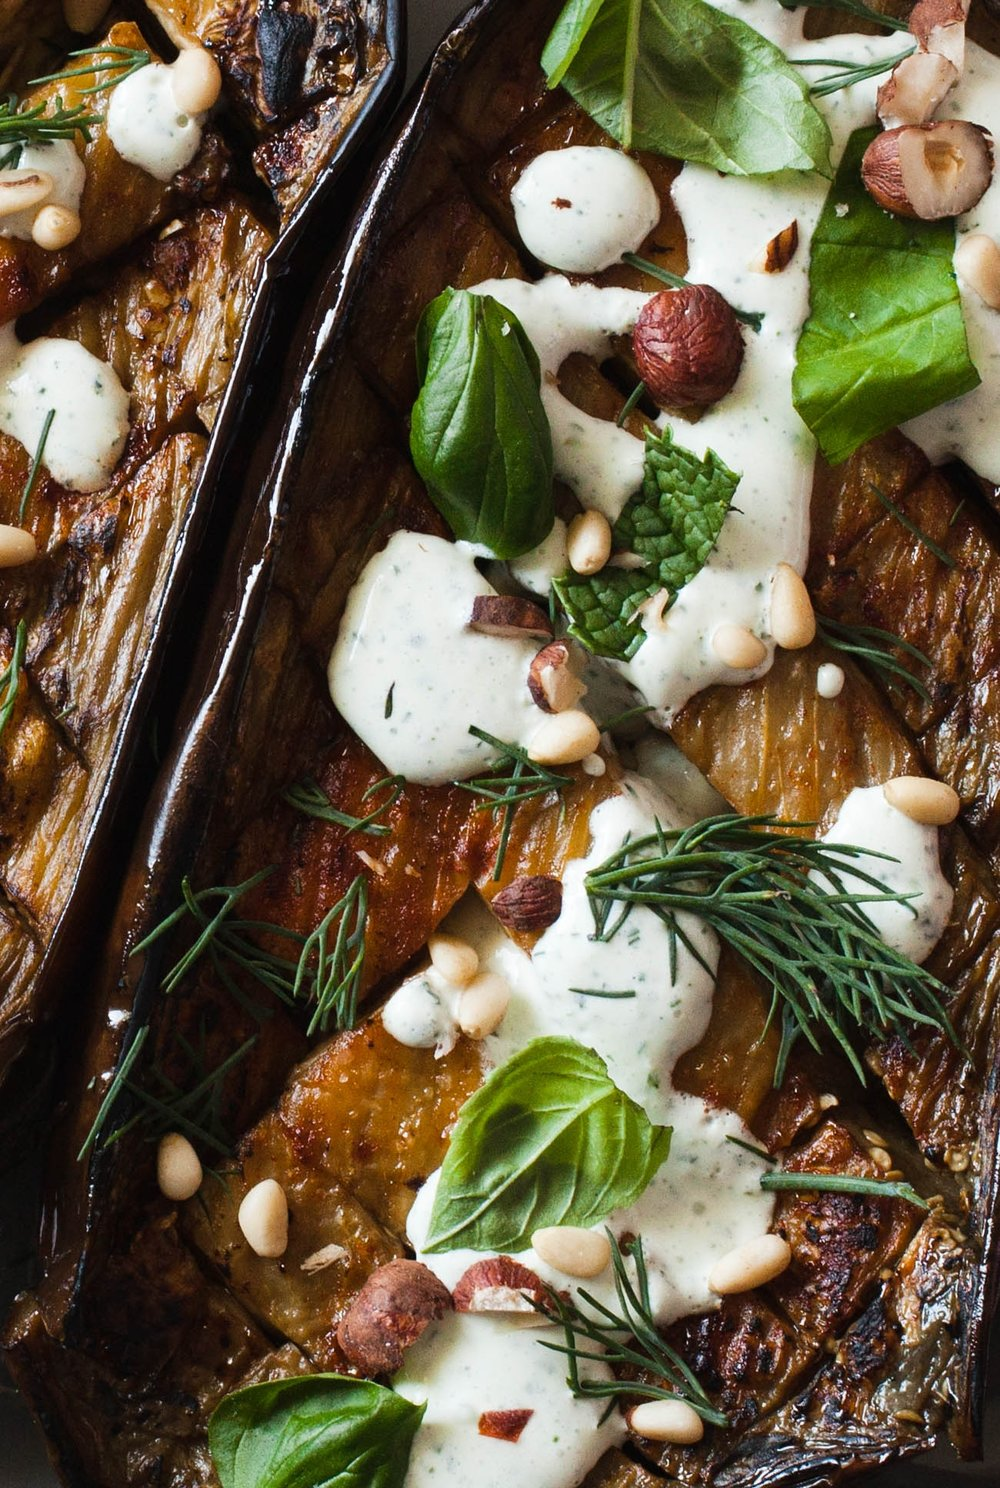 Roasted Eggplant with Herbed Labneh - bonnie plants - foodie fresh